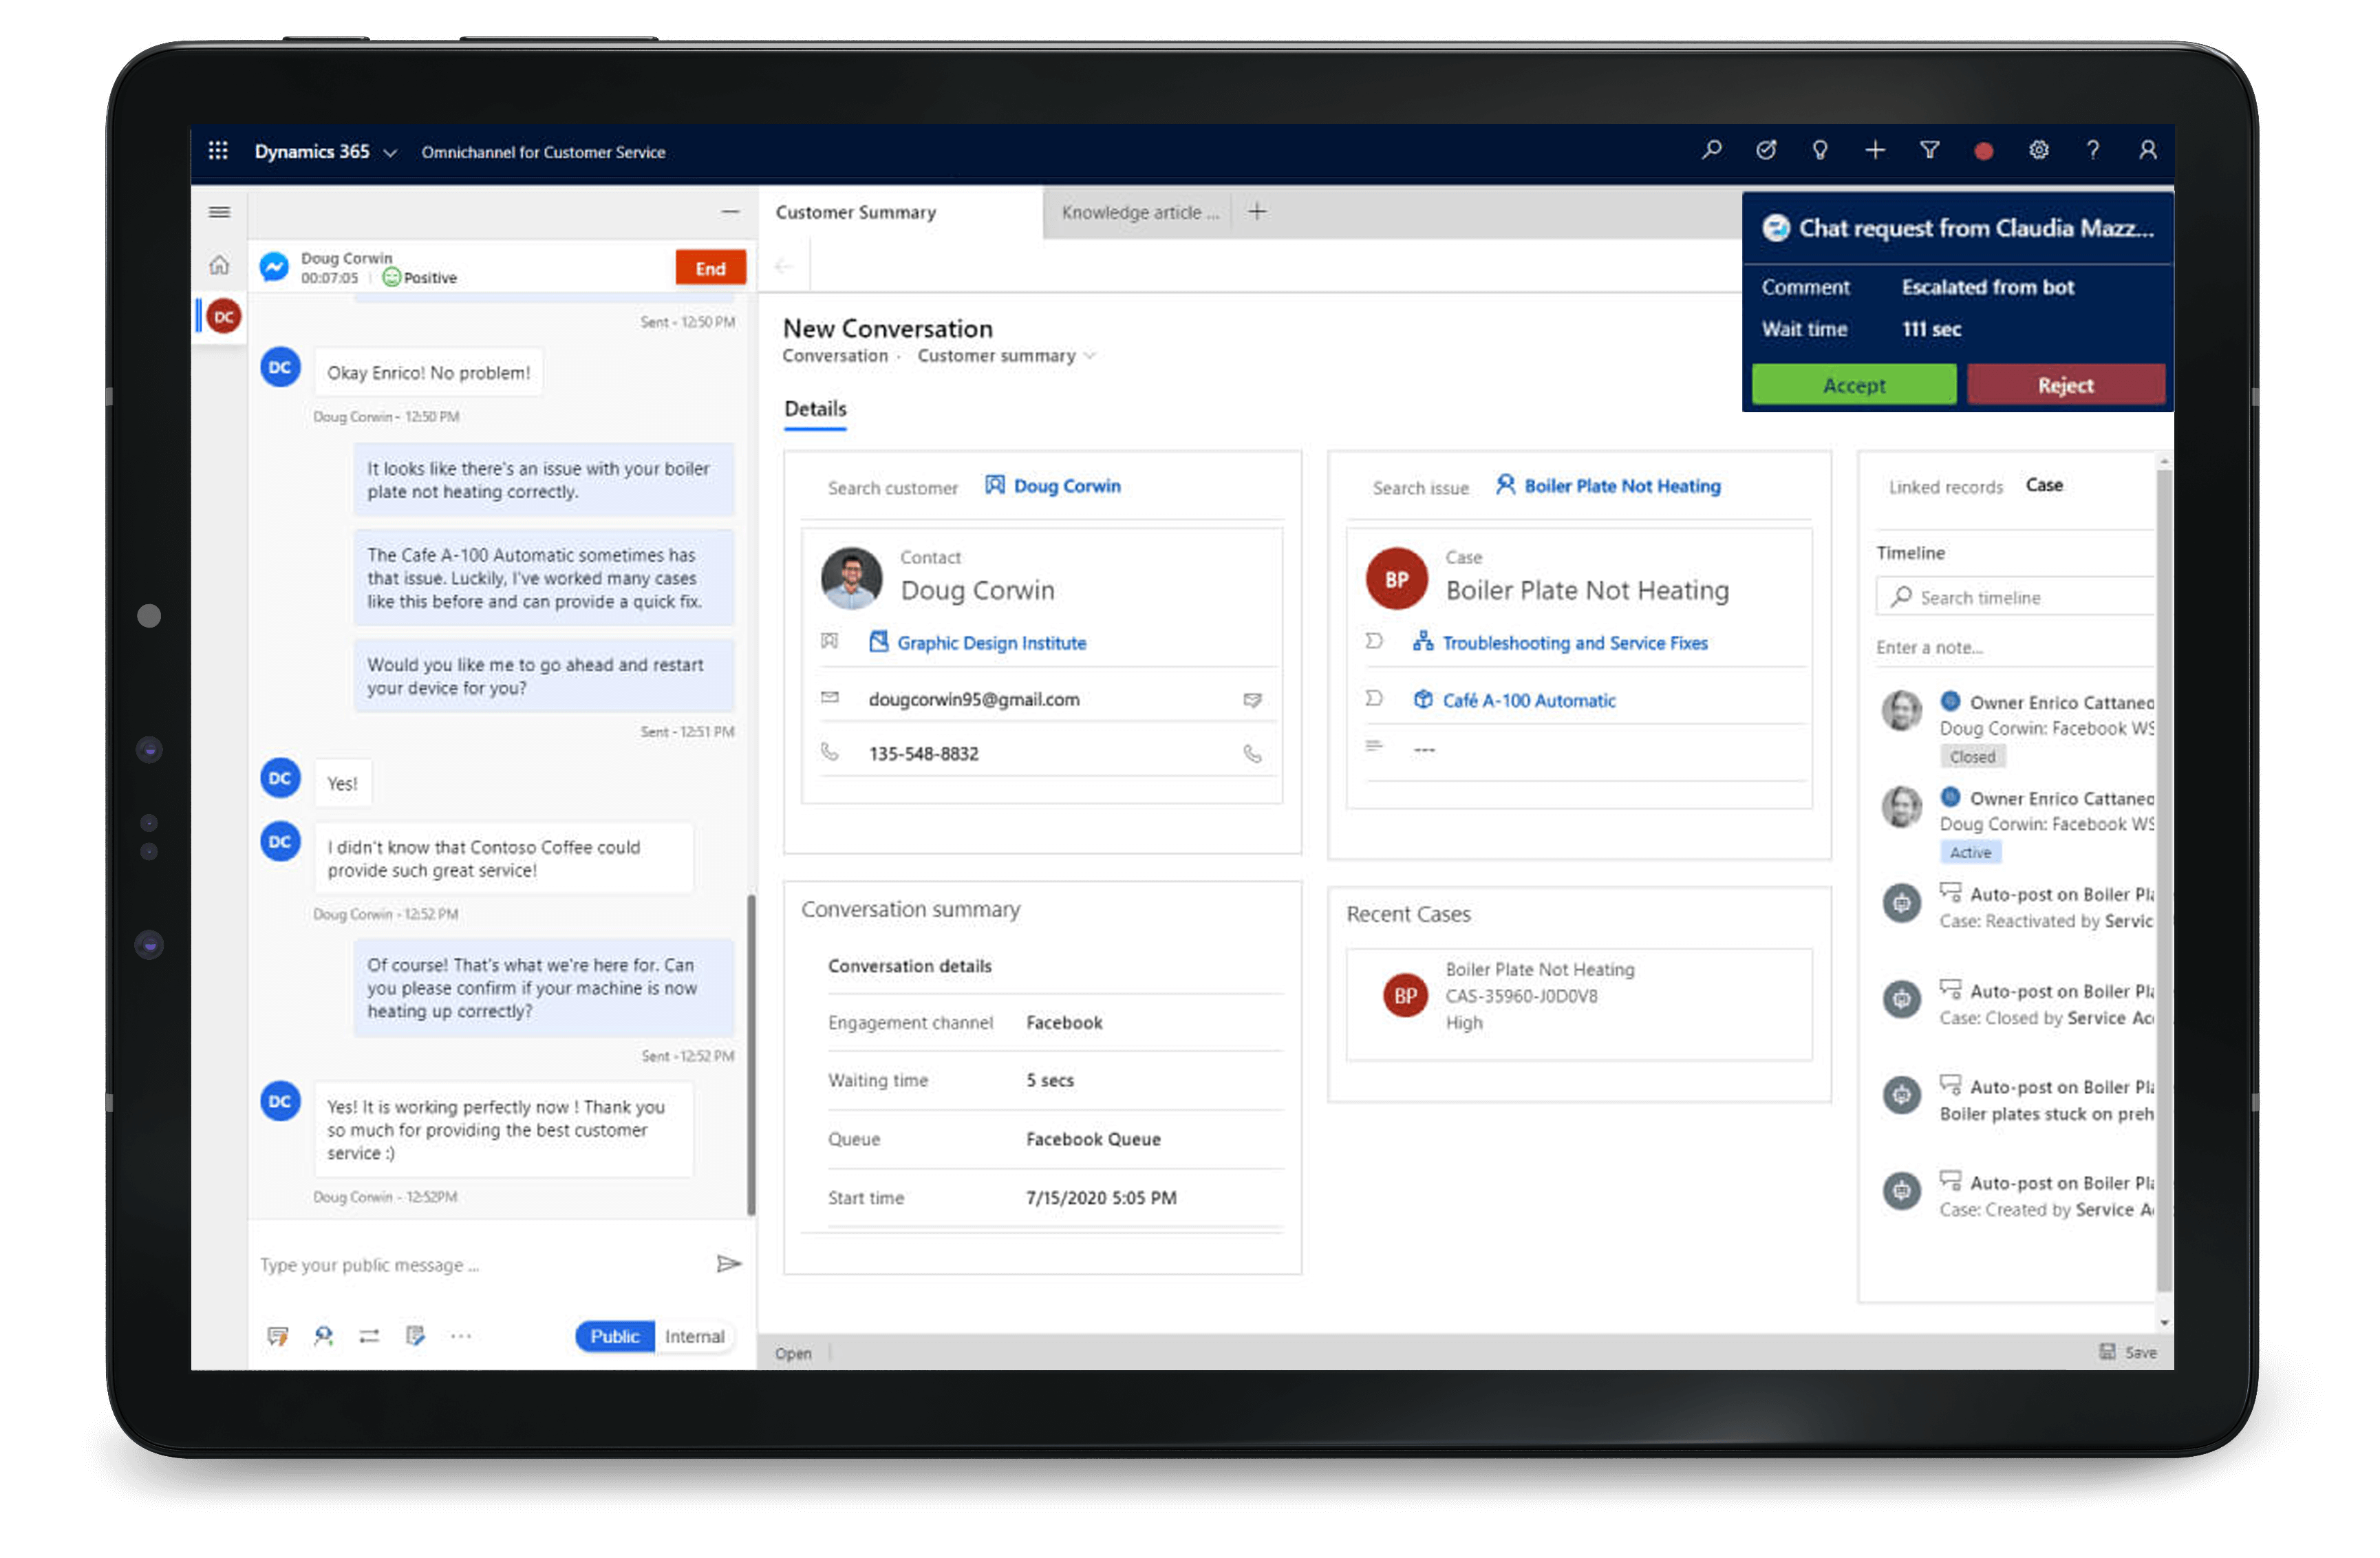 Dynamics 365 Customer Service to handle daily routine requests